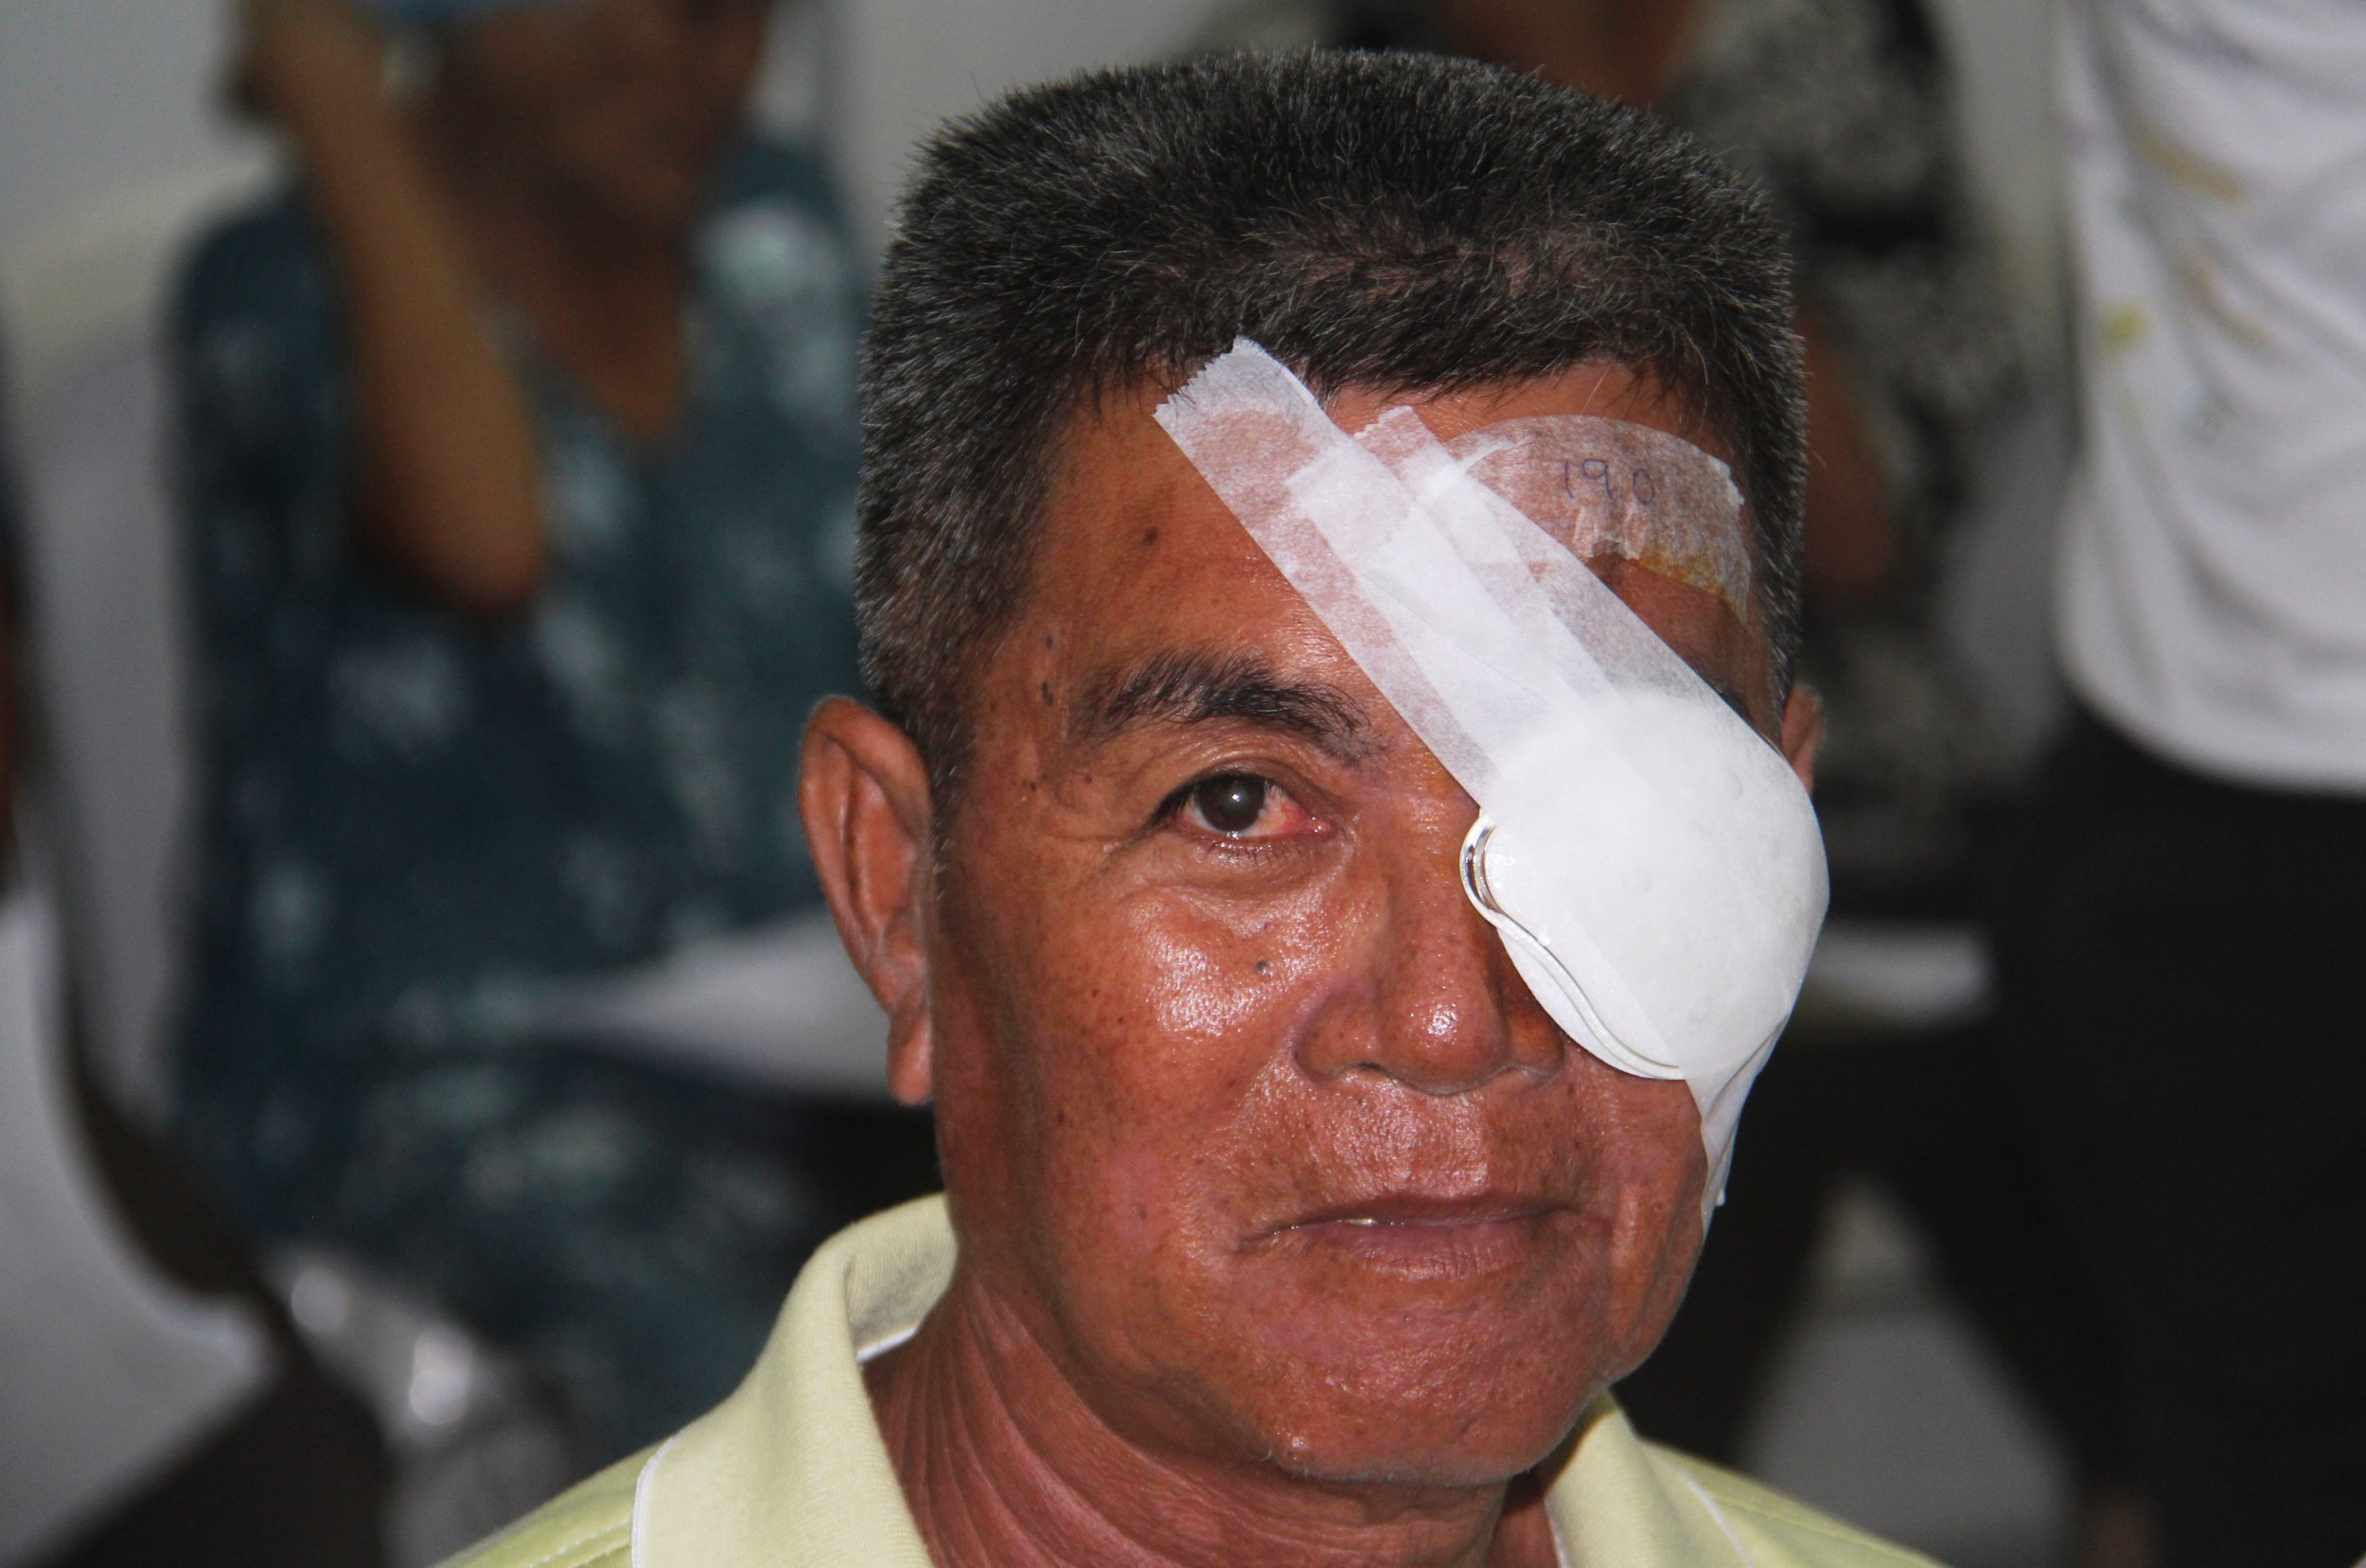 A post cataract operation paient